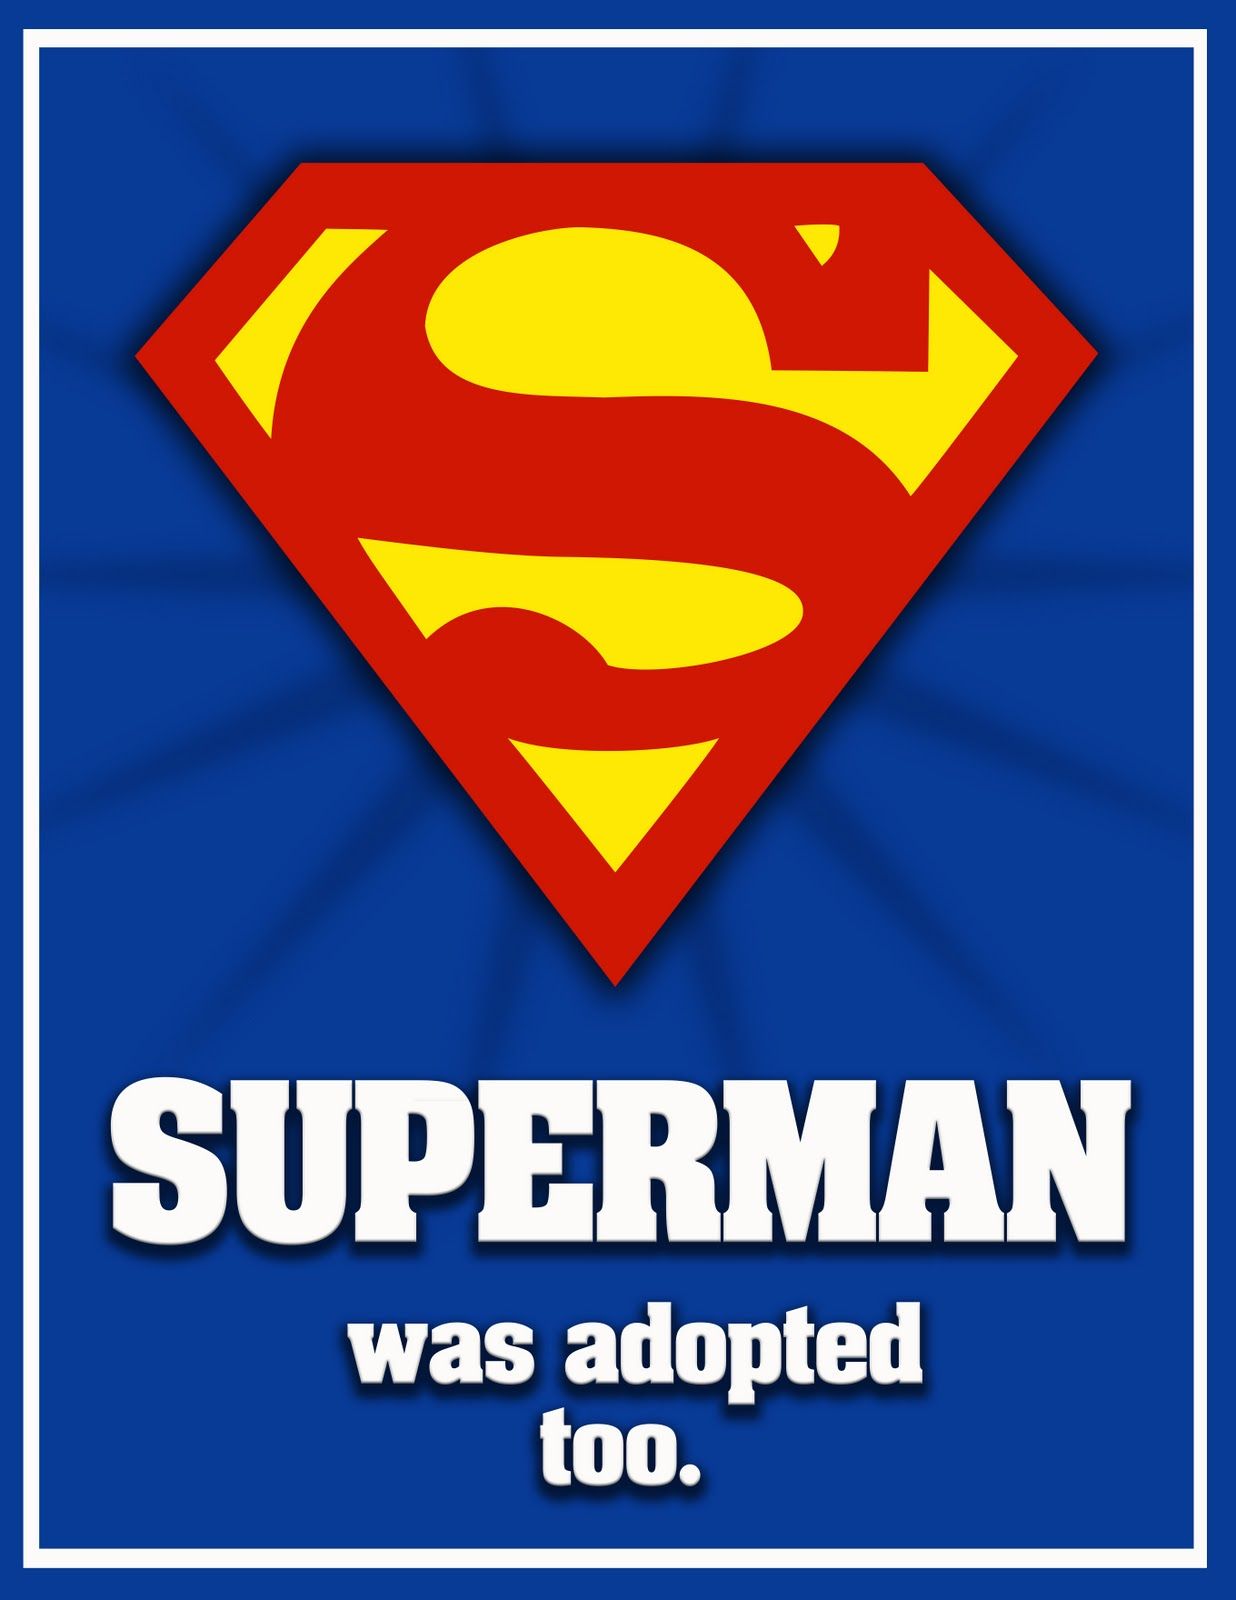 Superman - Adoption Update #5